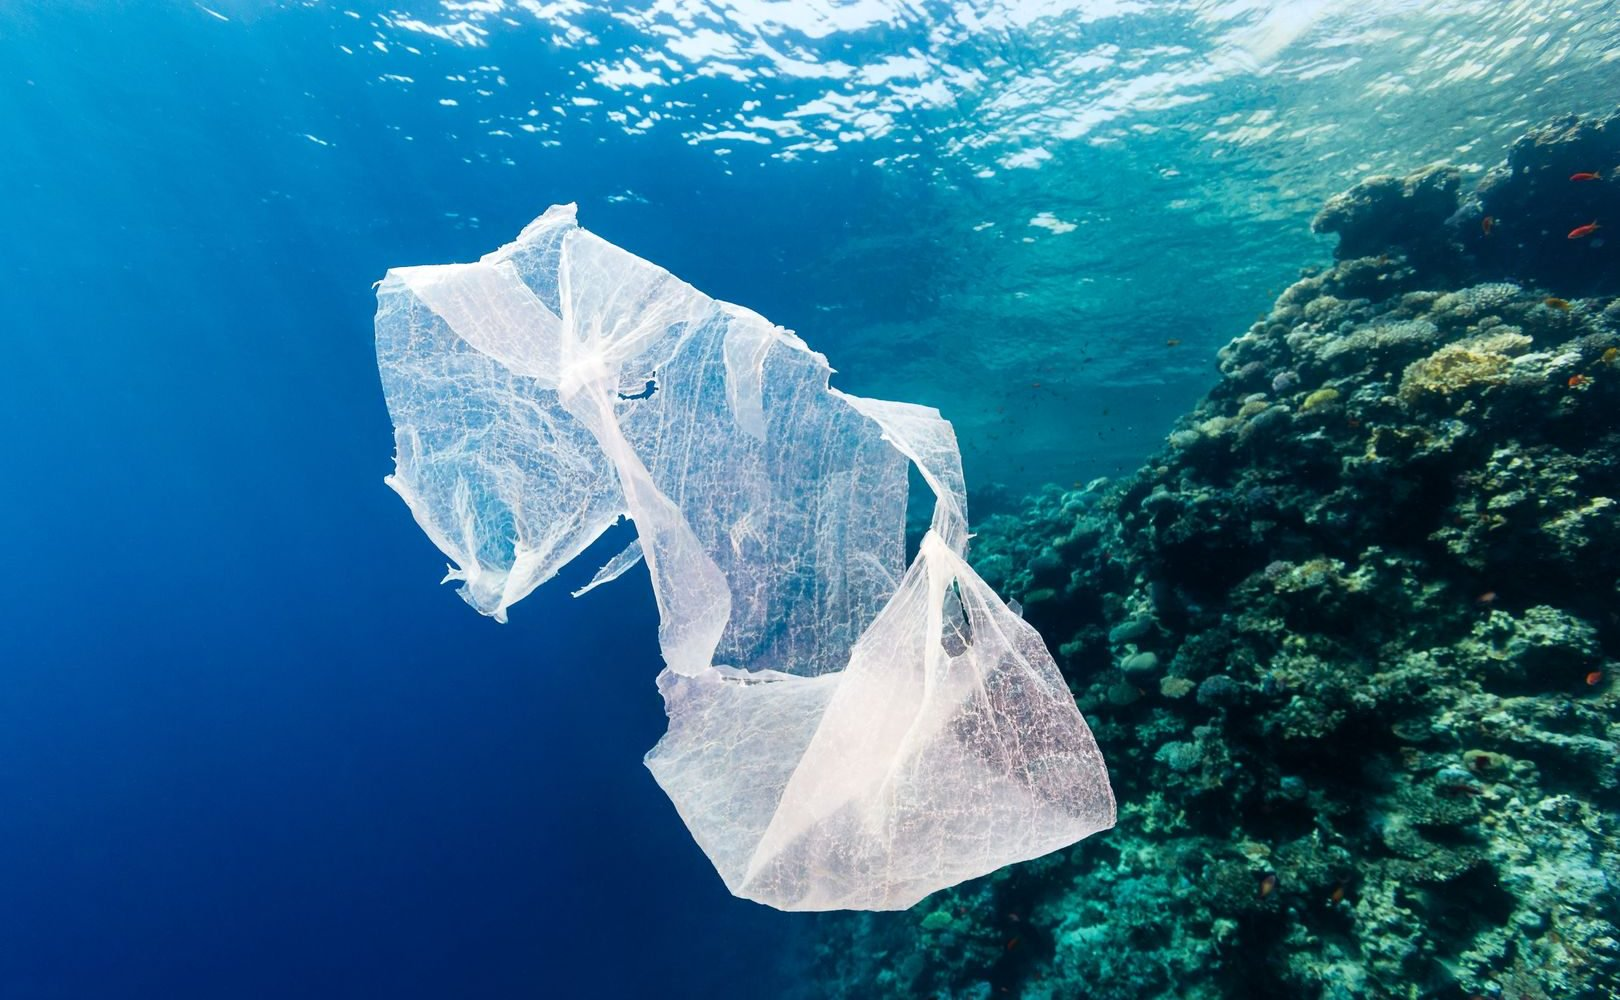 Enzyme which can digest most commonly polluting plastics discovered